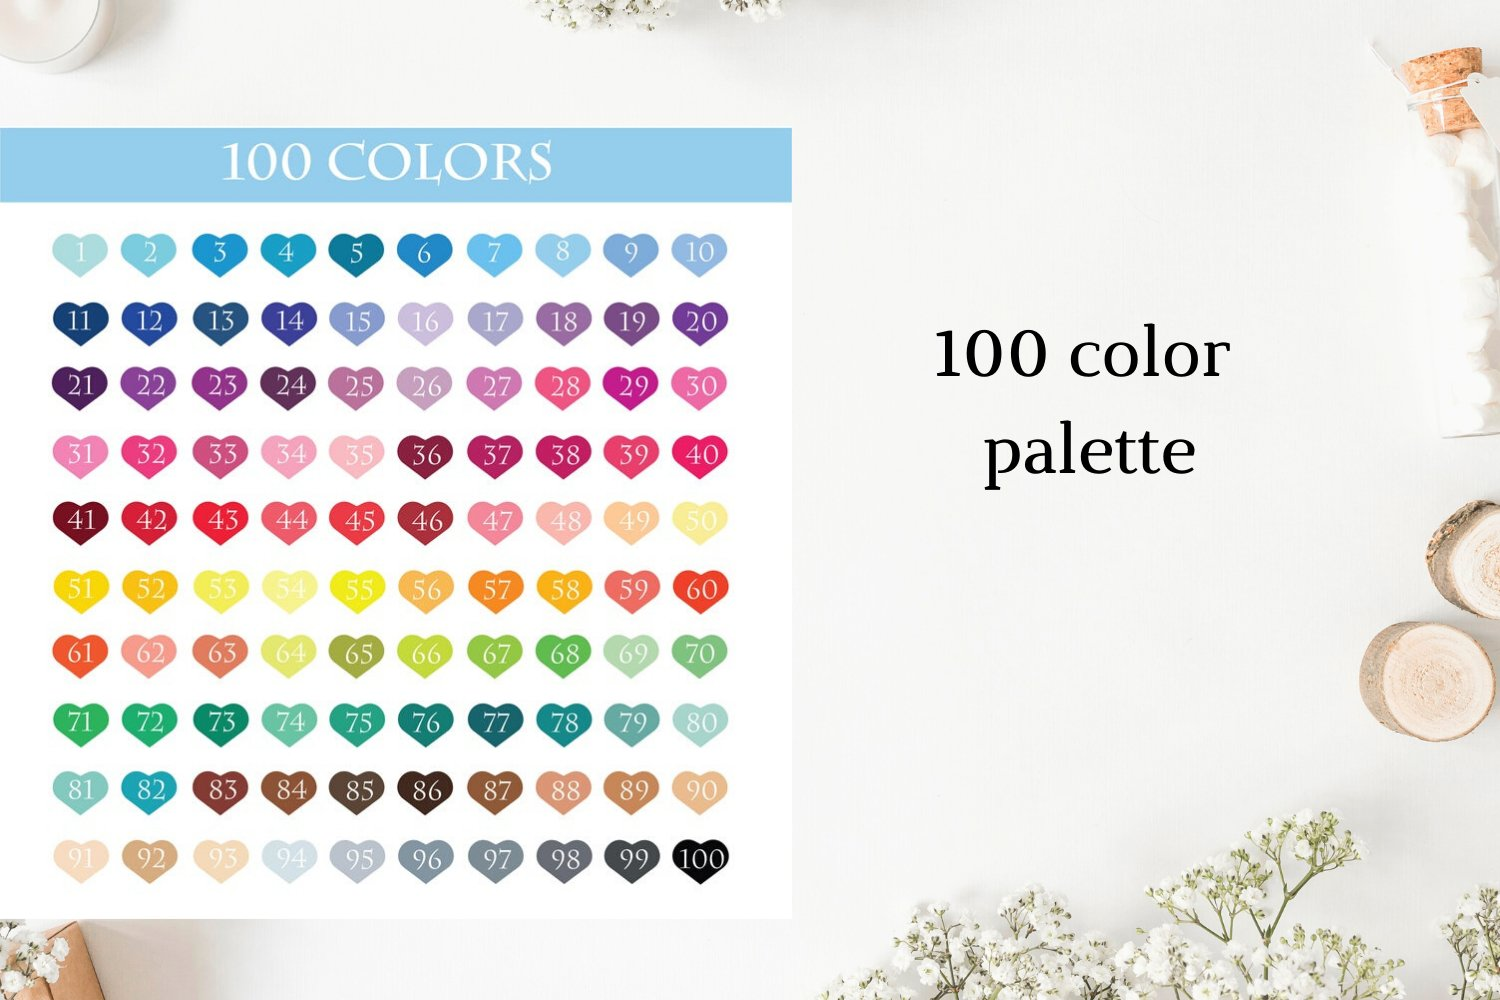 100 Today font clipart, Today sticker clipart, Today planner example image 3